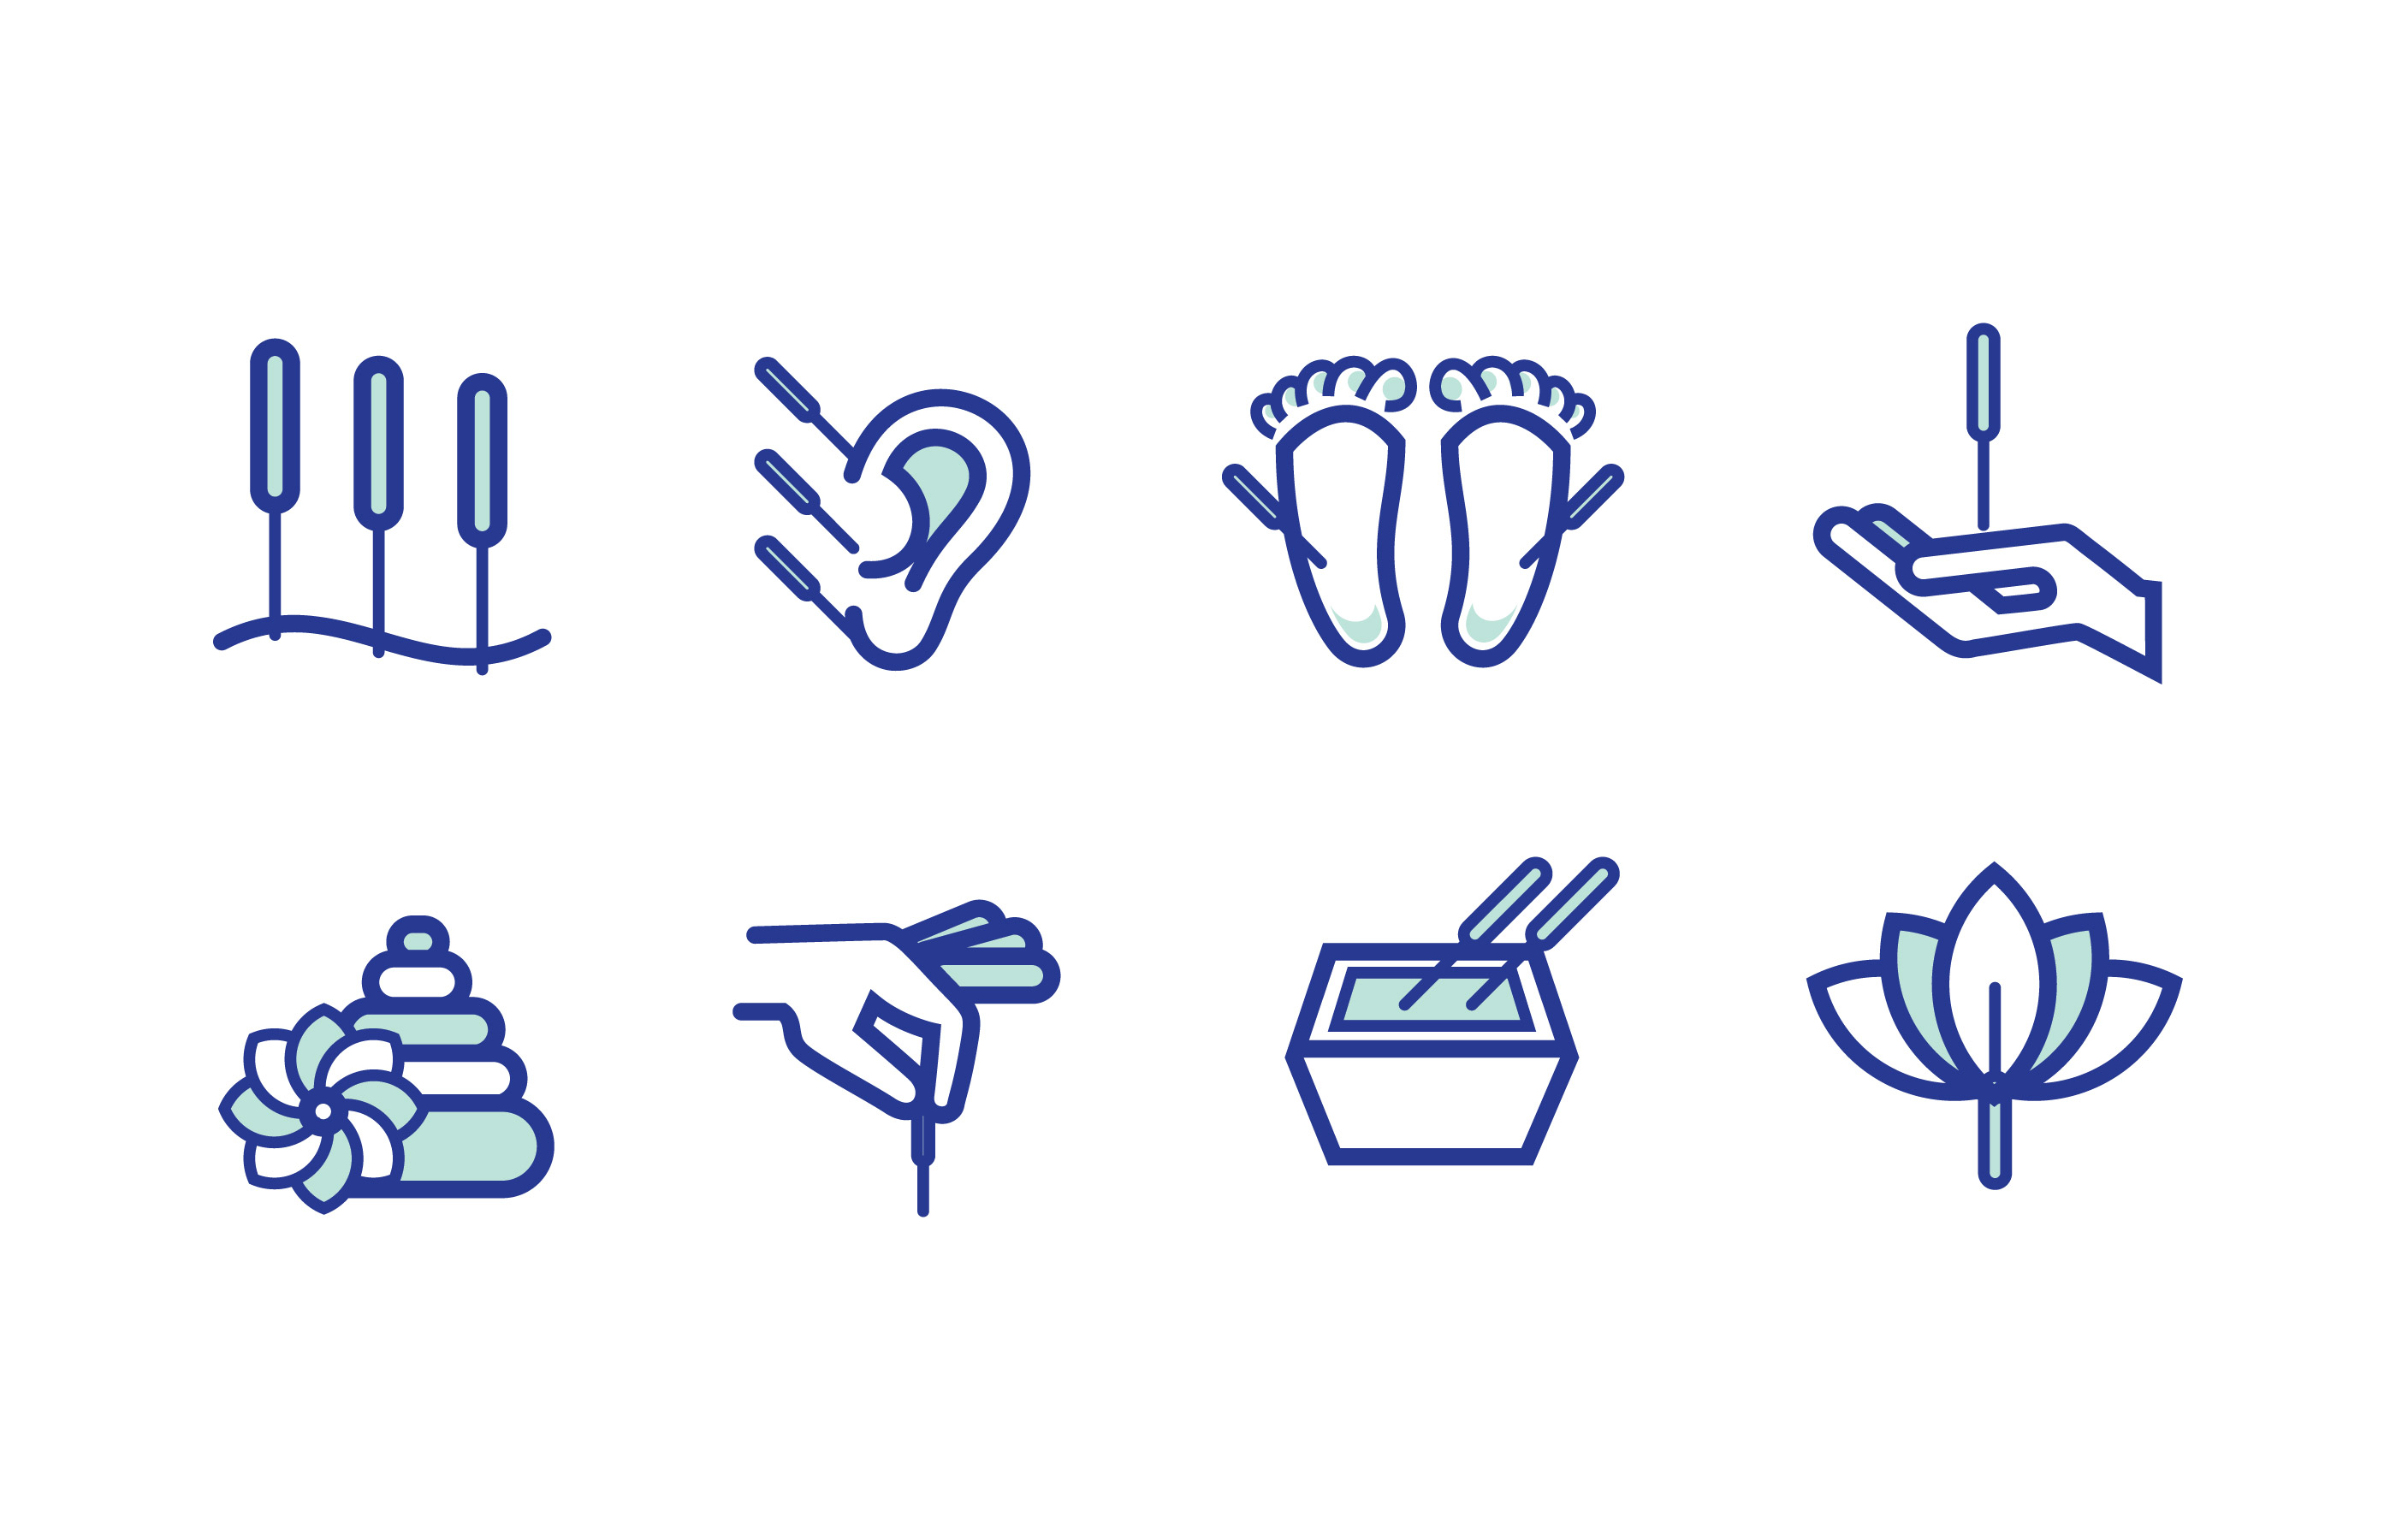 acupuncture icon pack download free vector art stock